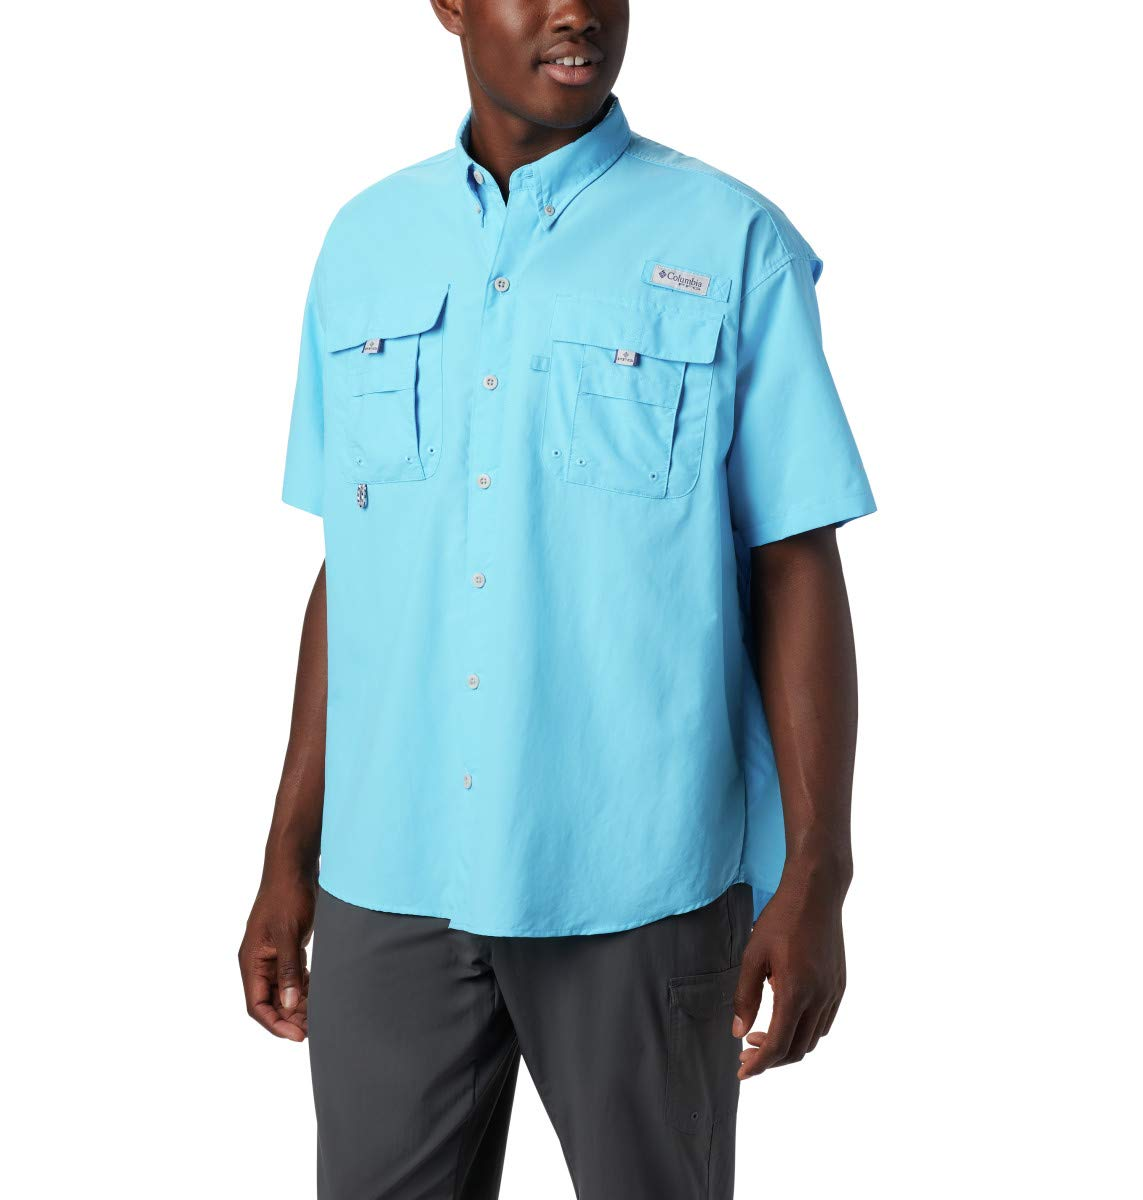 Columbia Men's PFG Bahama II Short Sleeve Shirt, Riptide, X-Small by Columbia